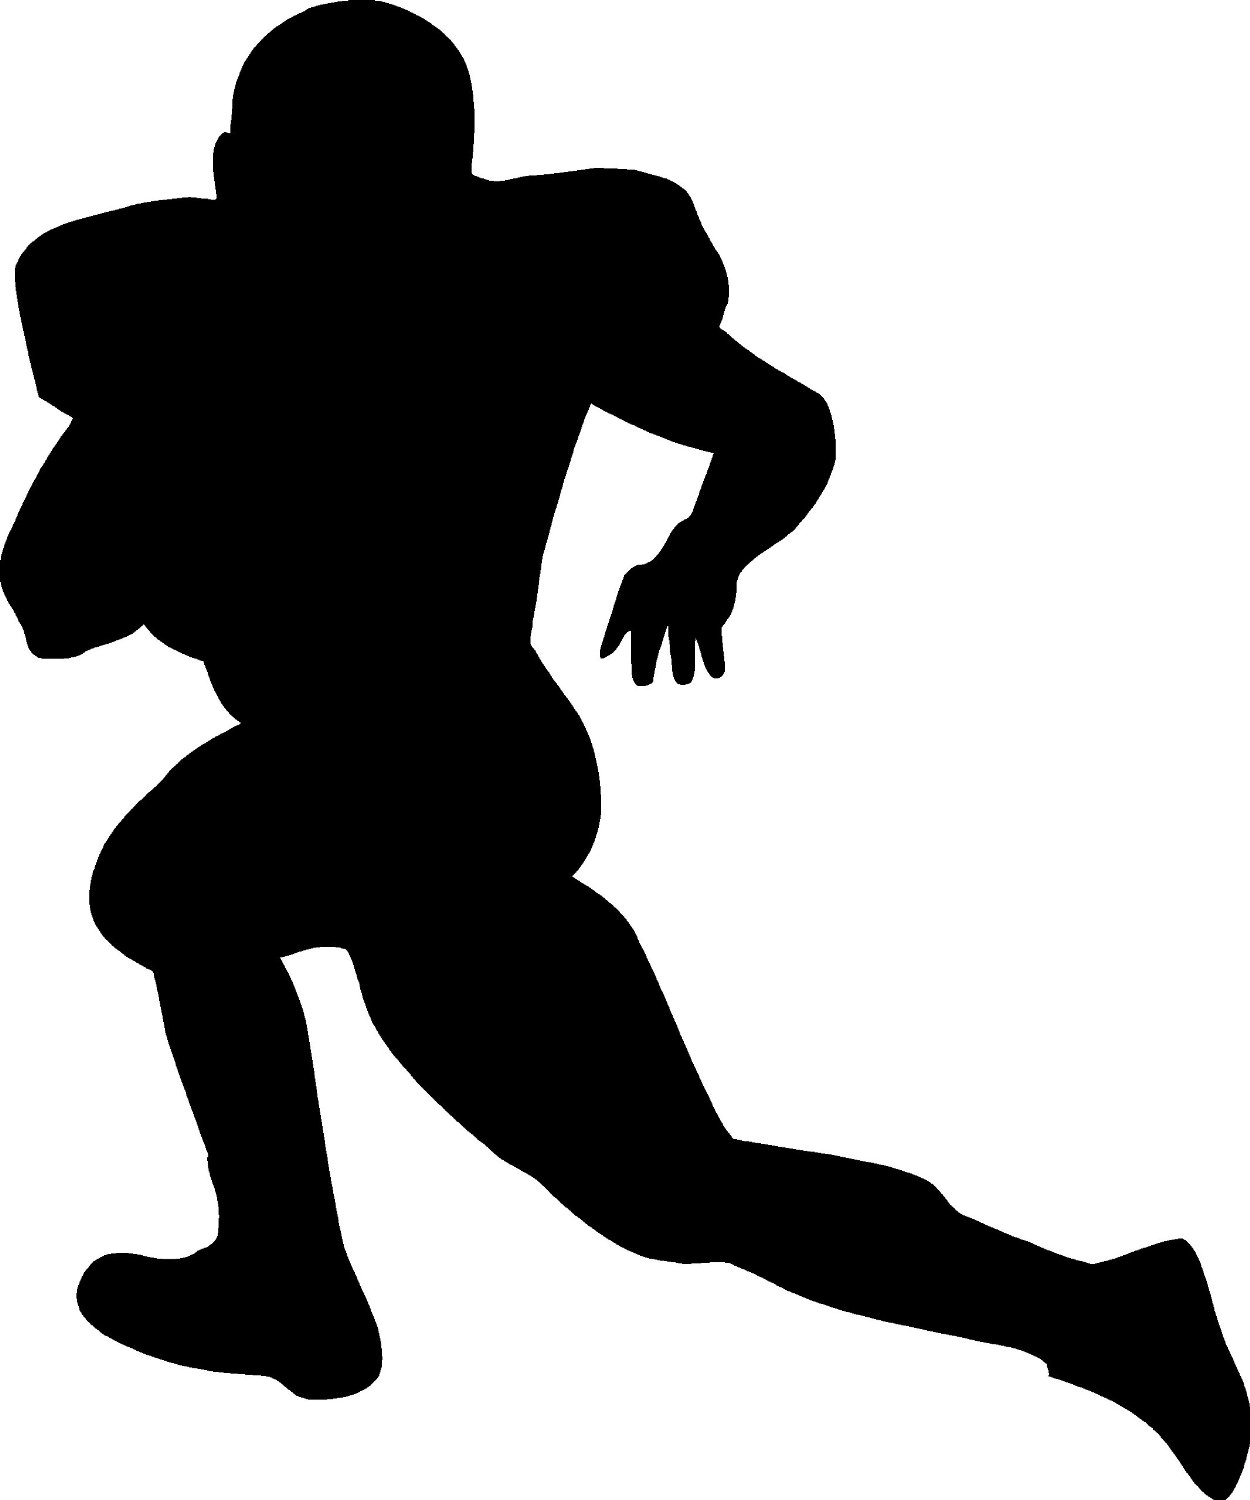 football player silhouette clip art at getdrawings com free for rh getdrawings com female soccer player clipart free soccer player clipart free